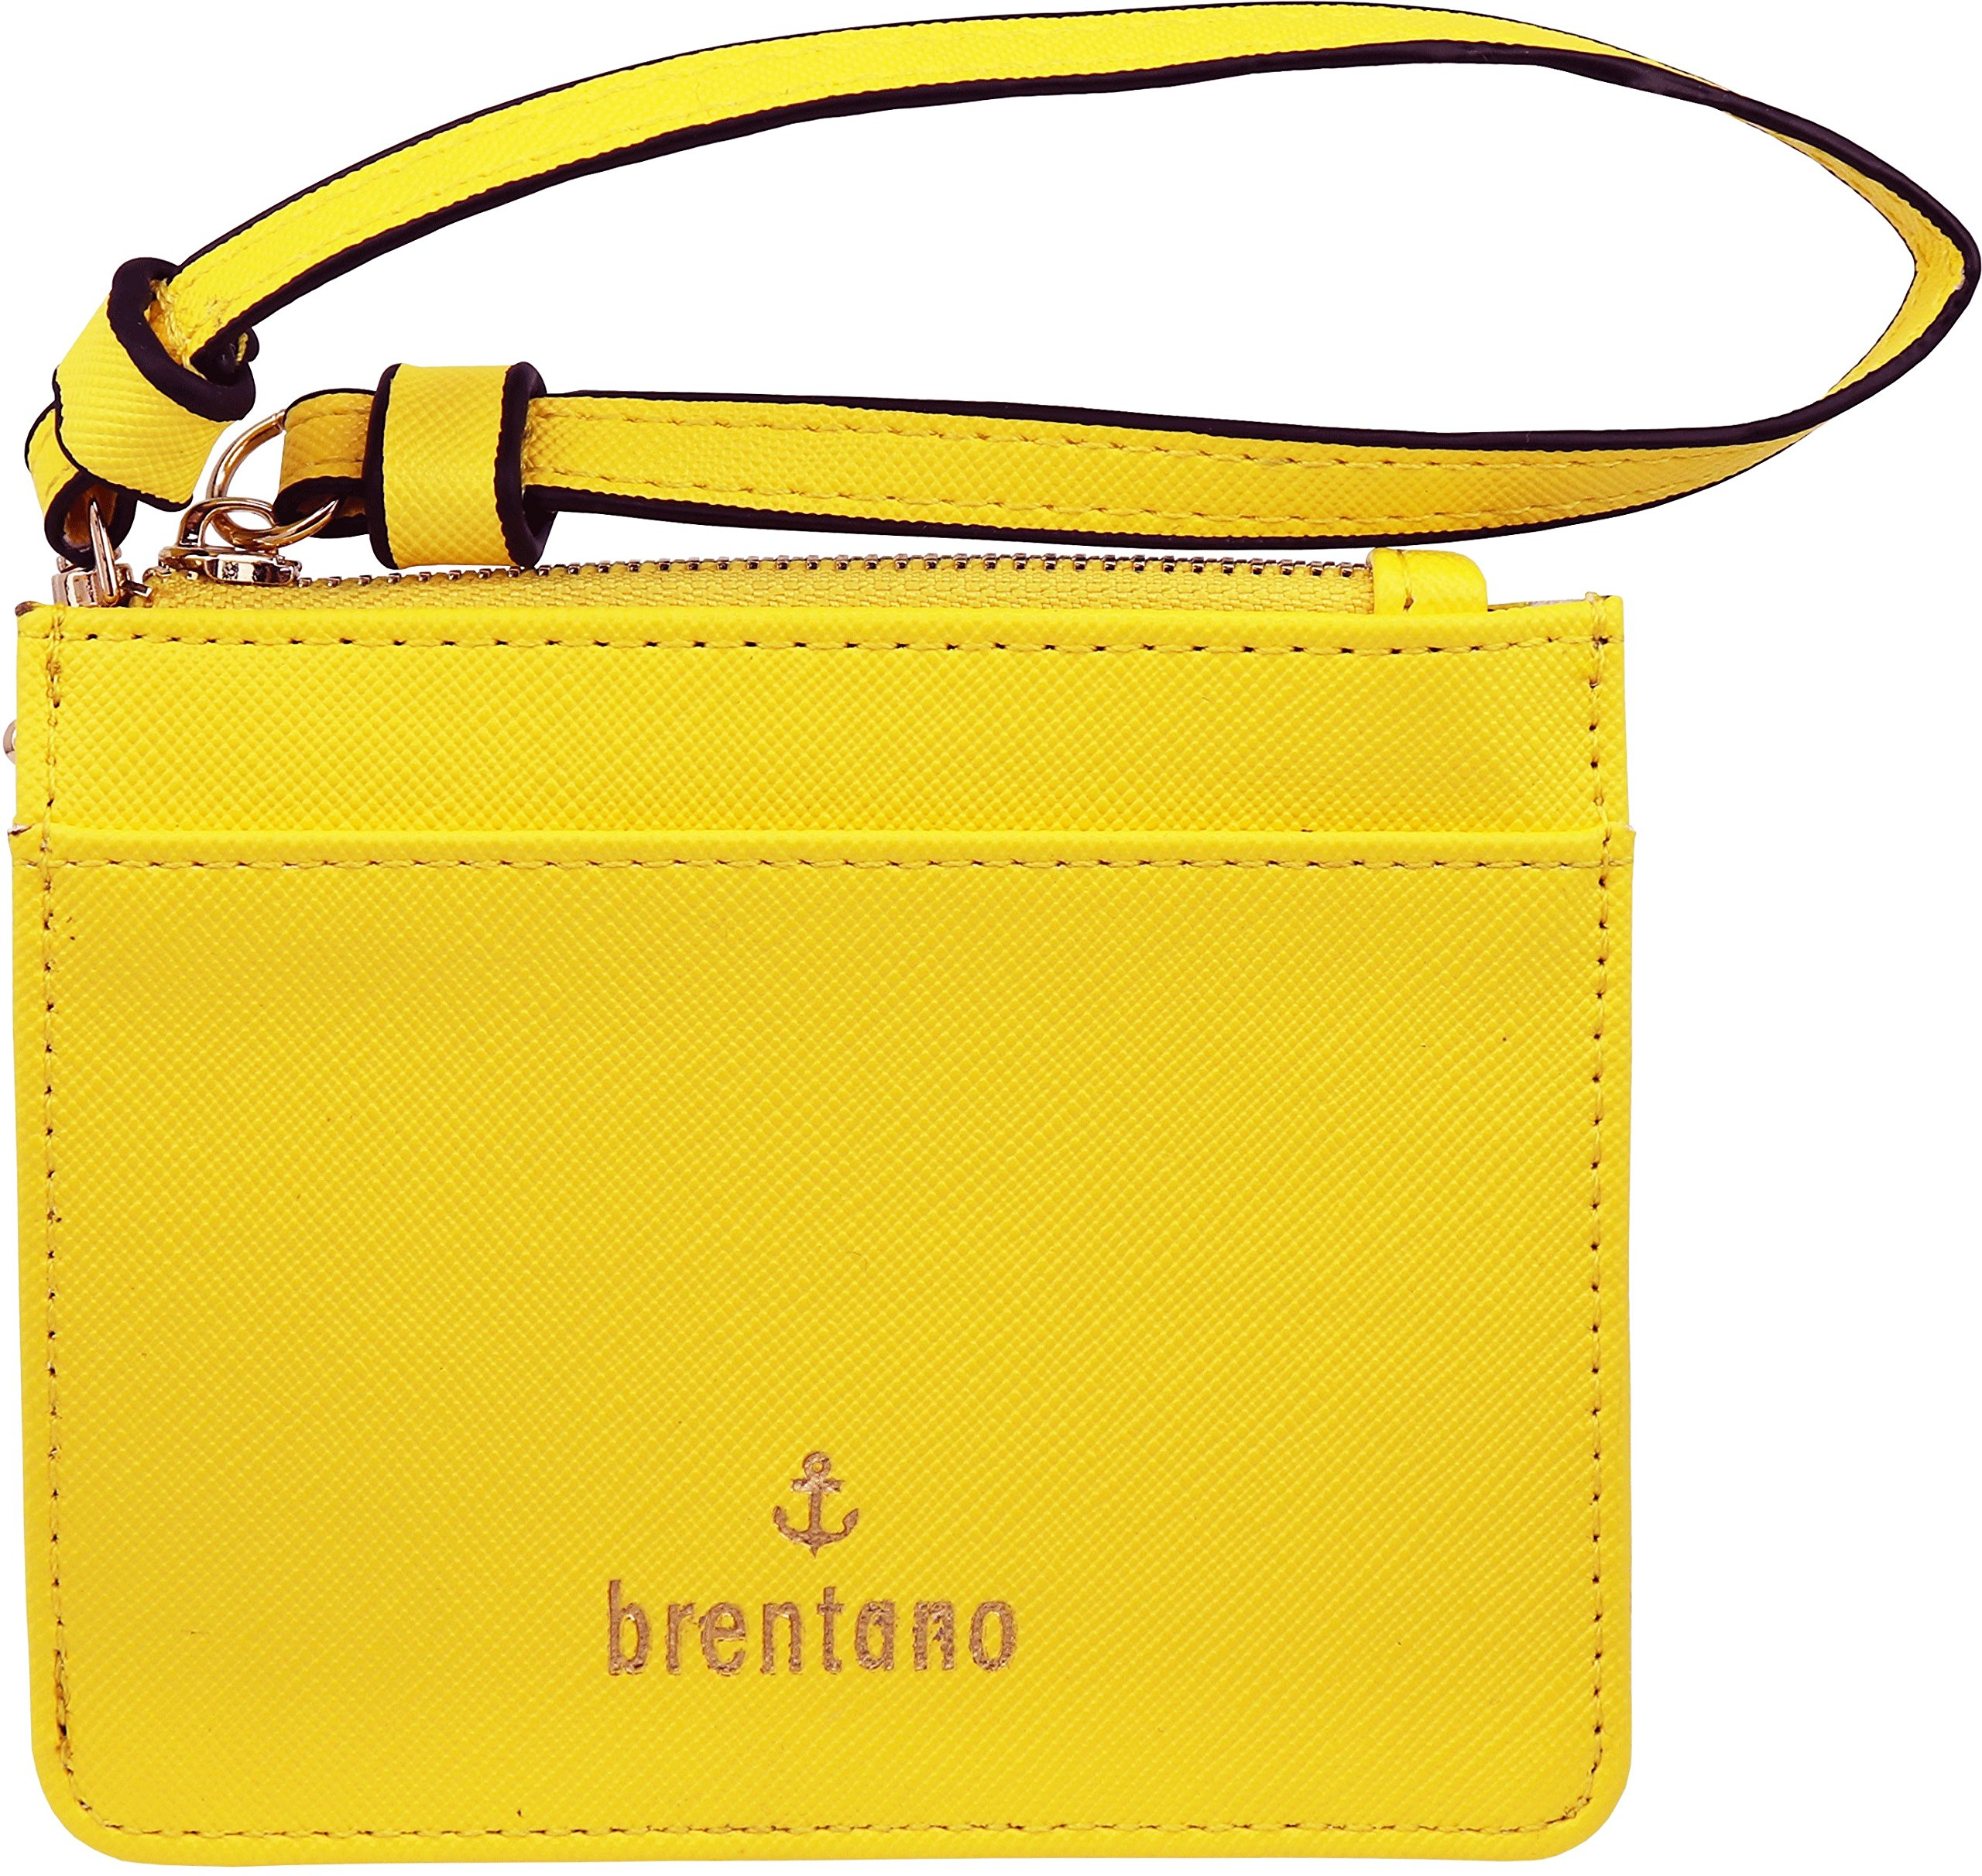 B BRENTANO Vegan Saffiano Leather Slim ID Credit Card Case with Wristlet Strap (Yellow) by B BRENTANO